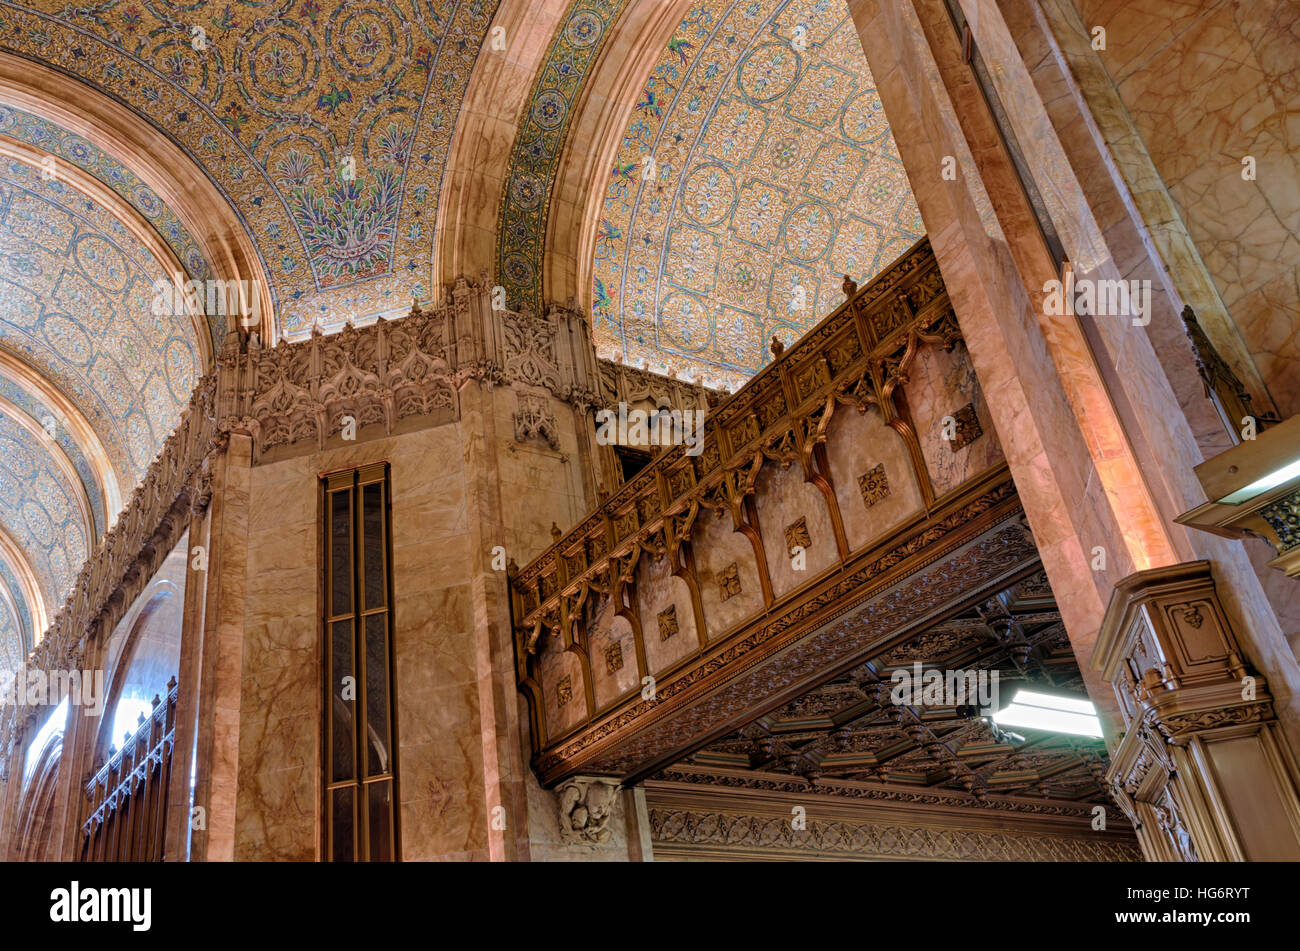 Interior Architectural Details Of The Lobby Of The Landmarked Woolworth  Building In New York Designed By Architect Cass Gilbert